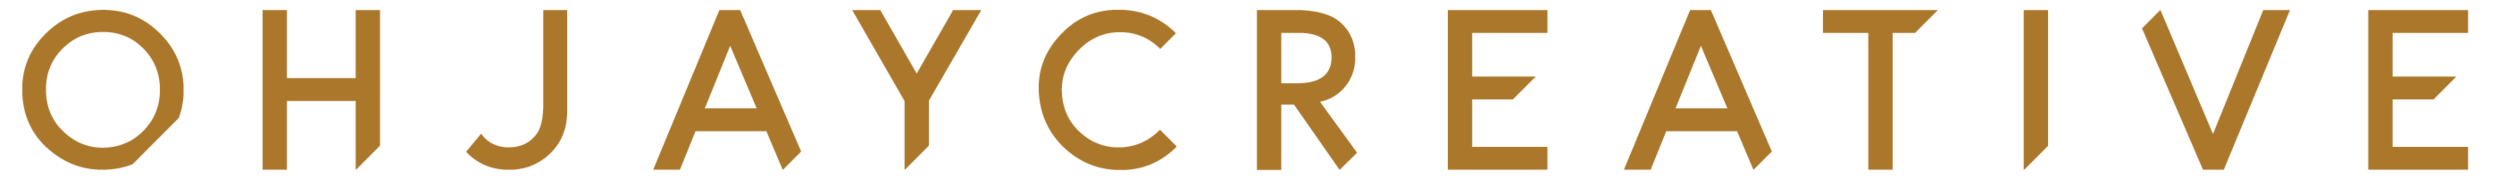 OHJC GOLD LOGO 2018 copy.png